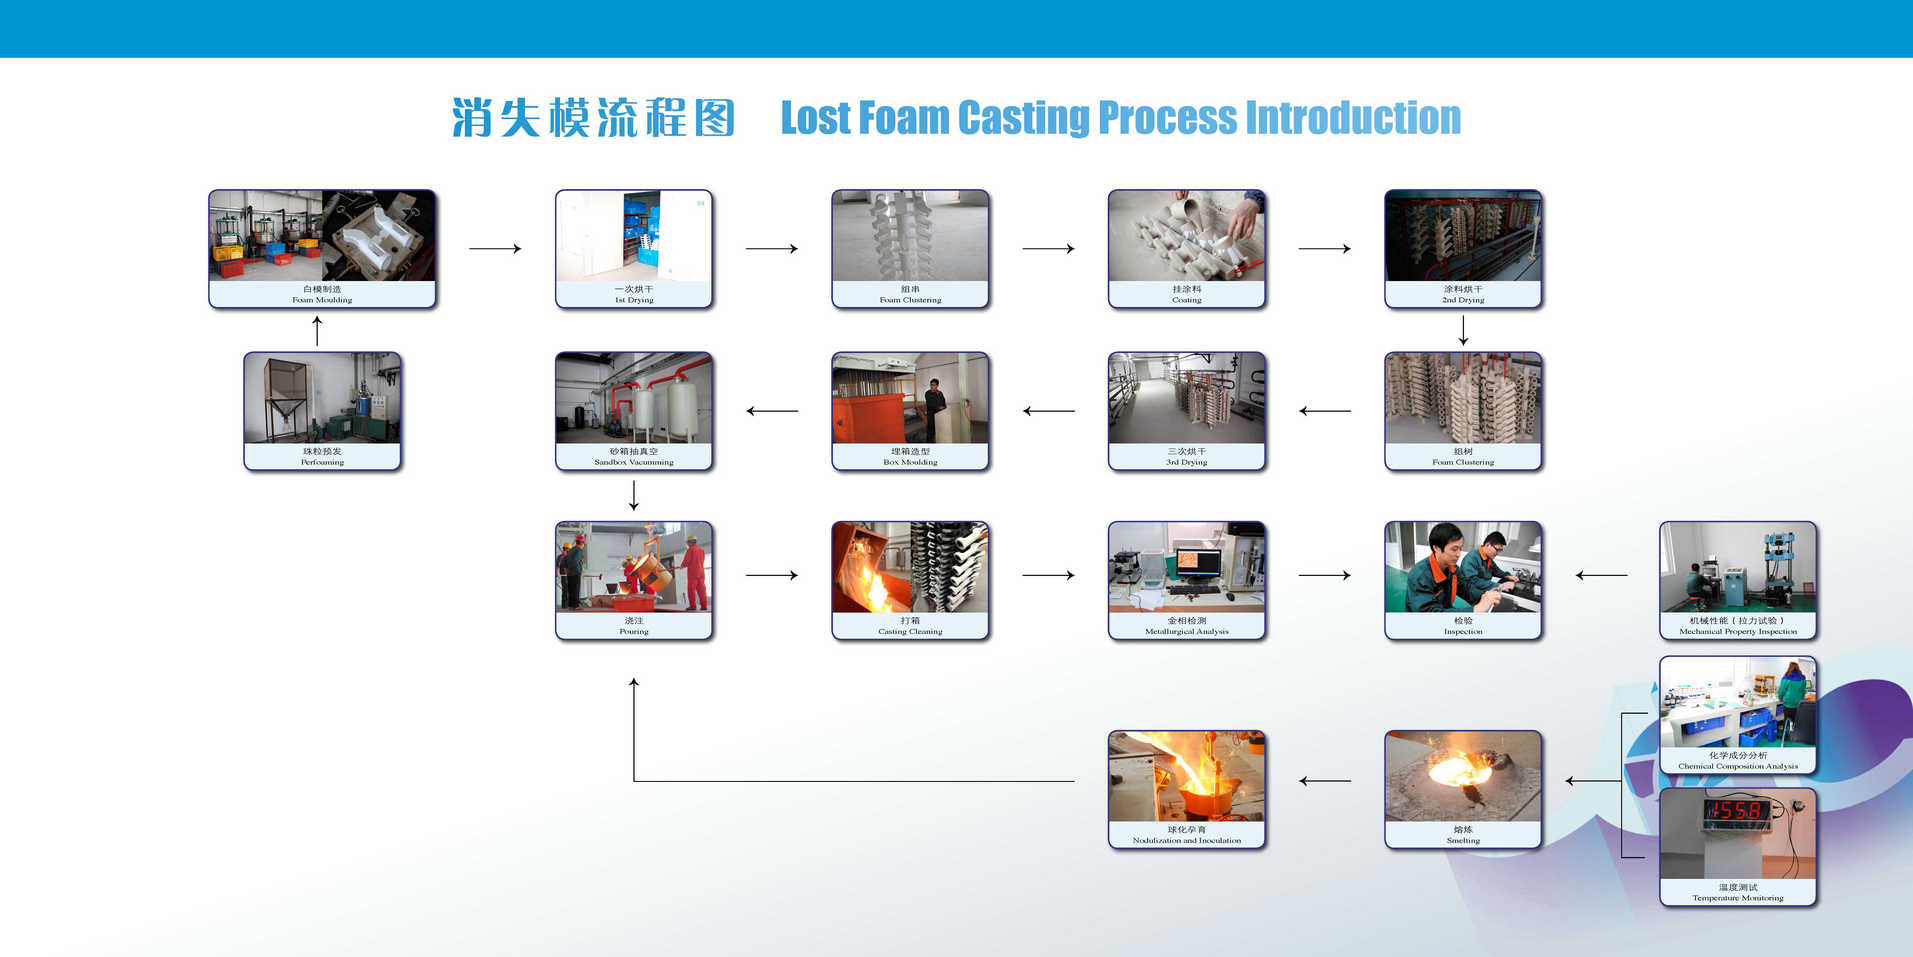 Lost Foam Casting Process Introduction